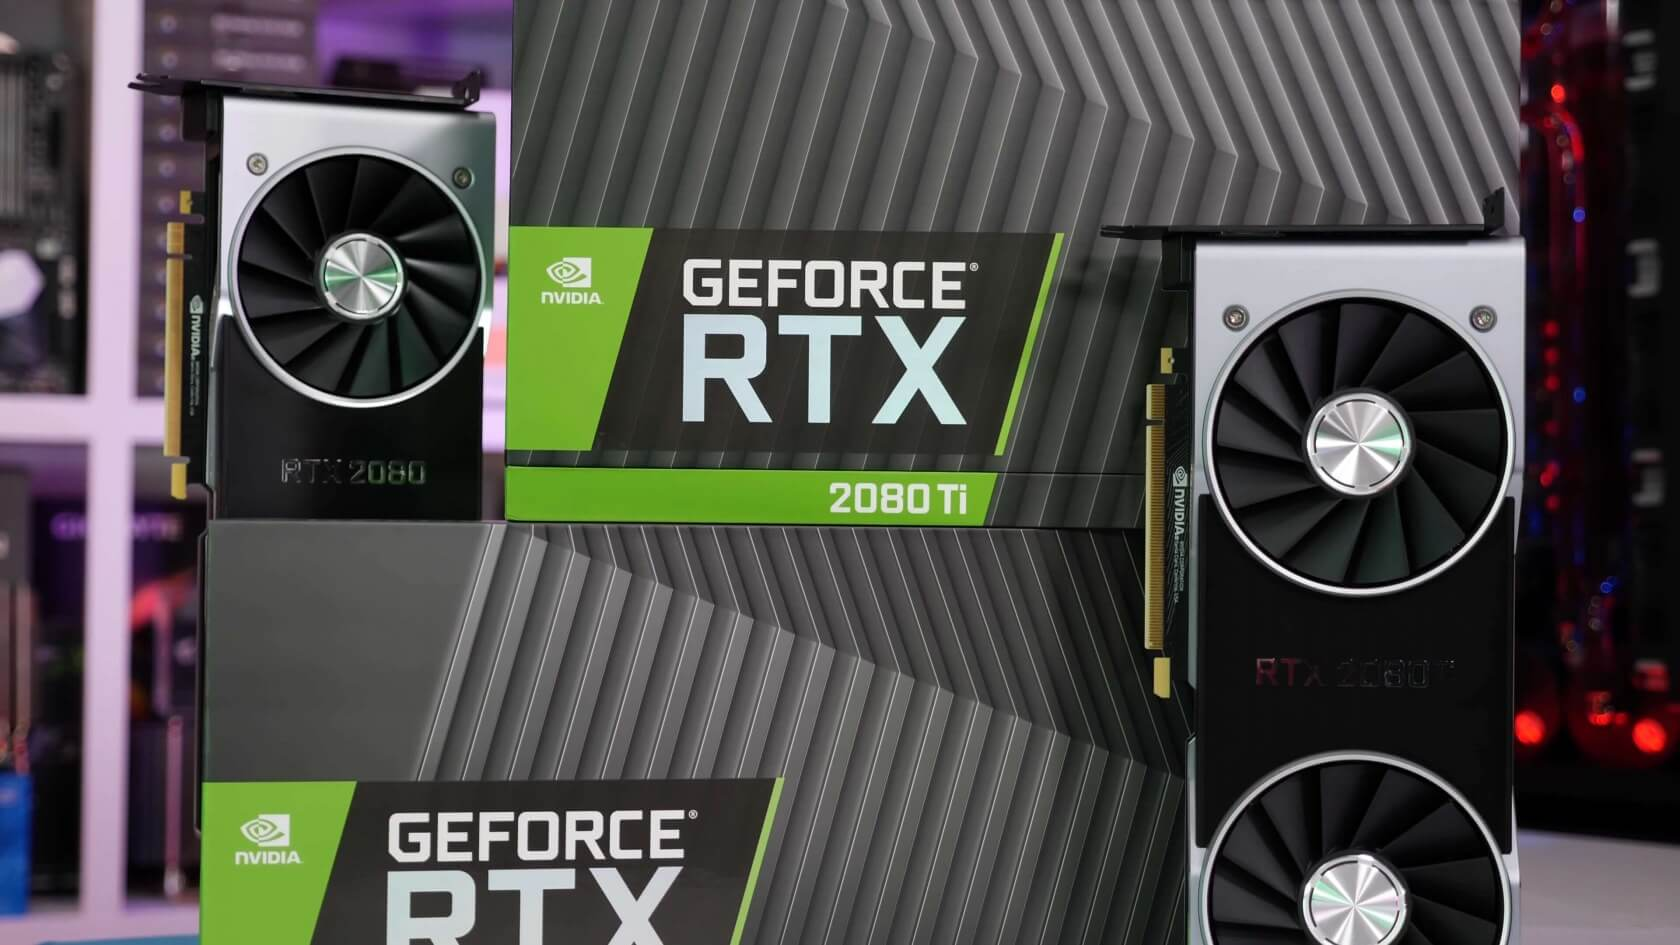 Nvidia has filed trademarks for 3080, 4080, and 5080